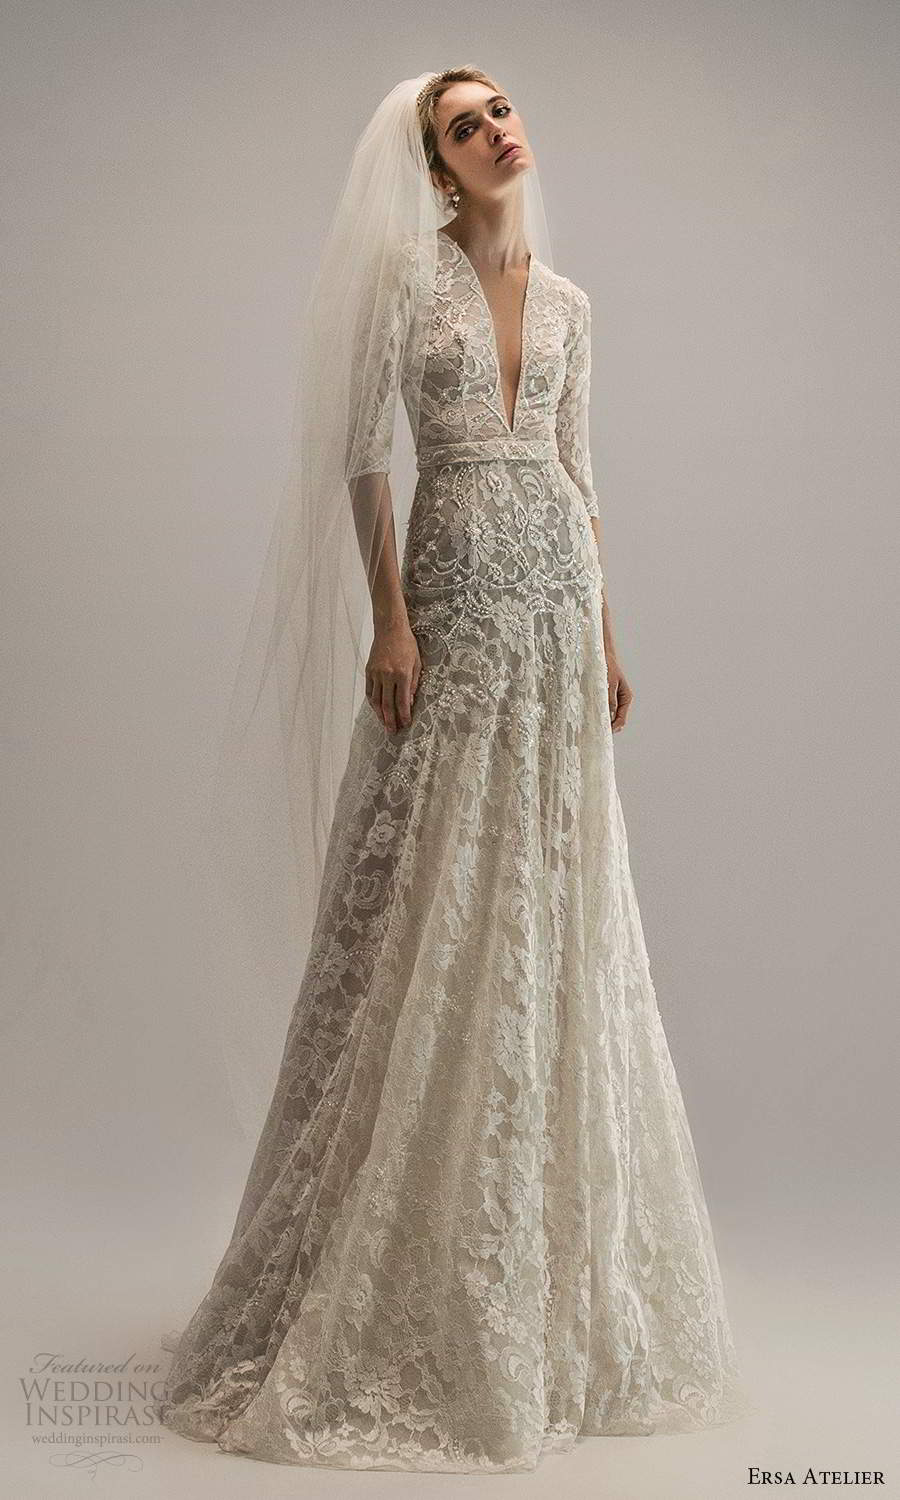 ersa atelier spring 2021 bridal 3 quarter sleeves plunging v neckline fully embellished lace a line wedding dress chapel train (22) mv